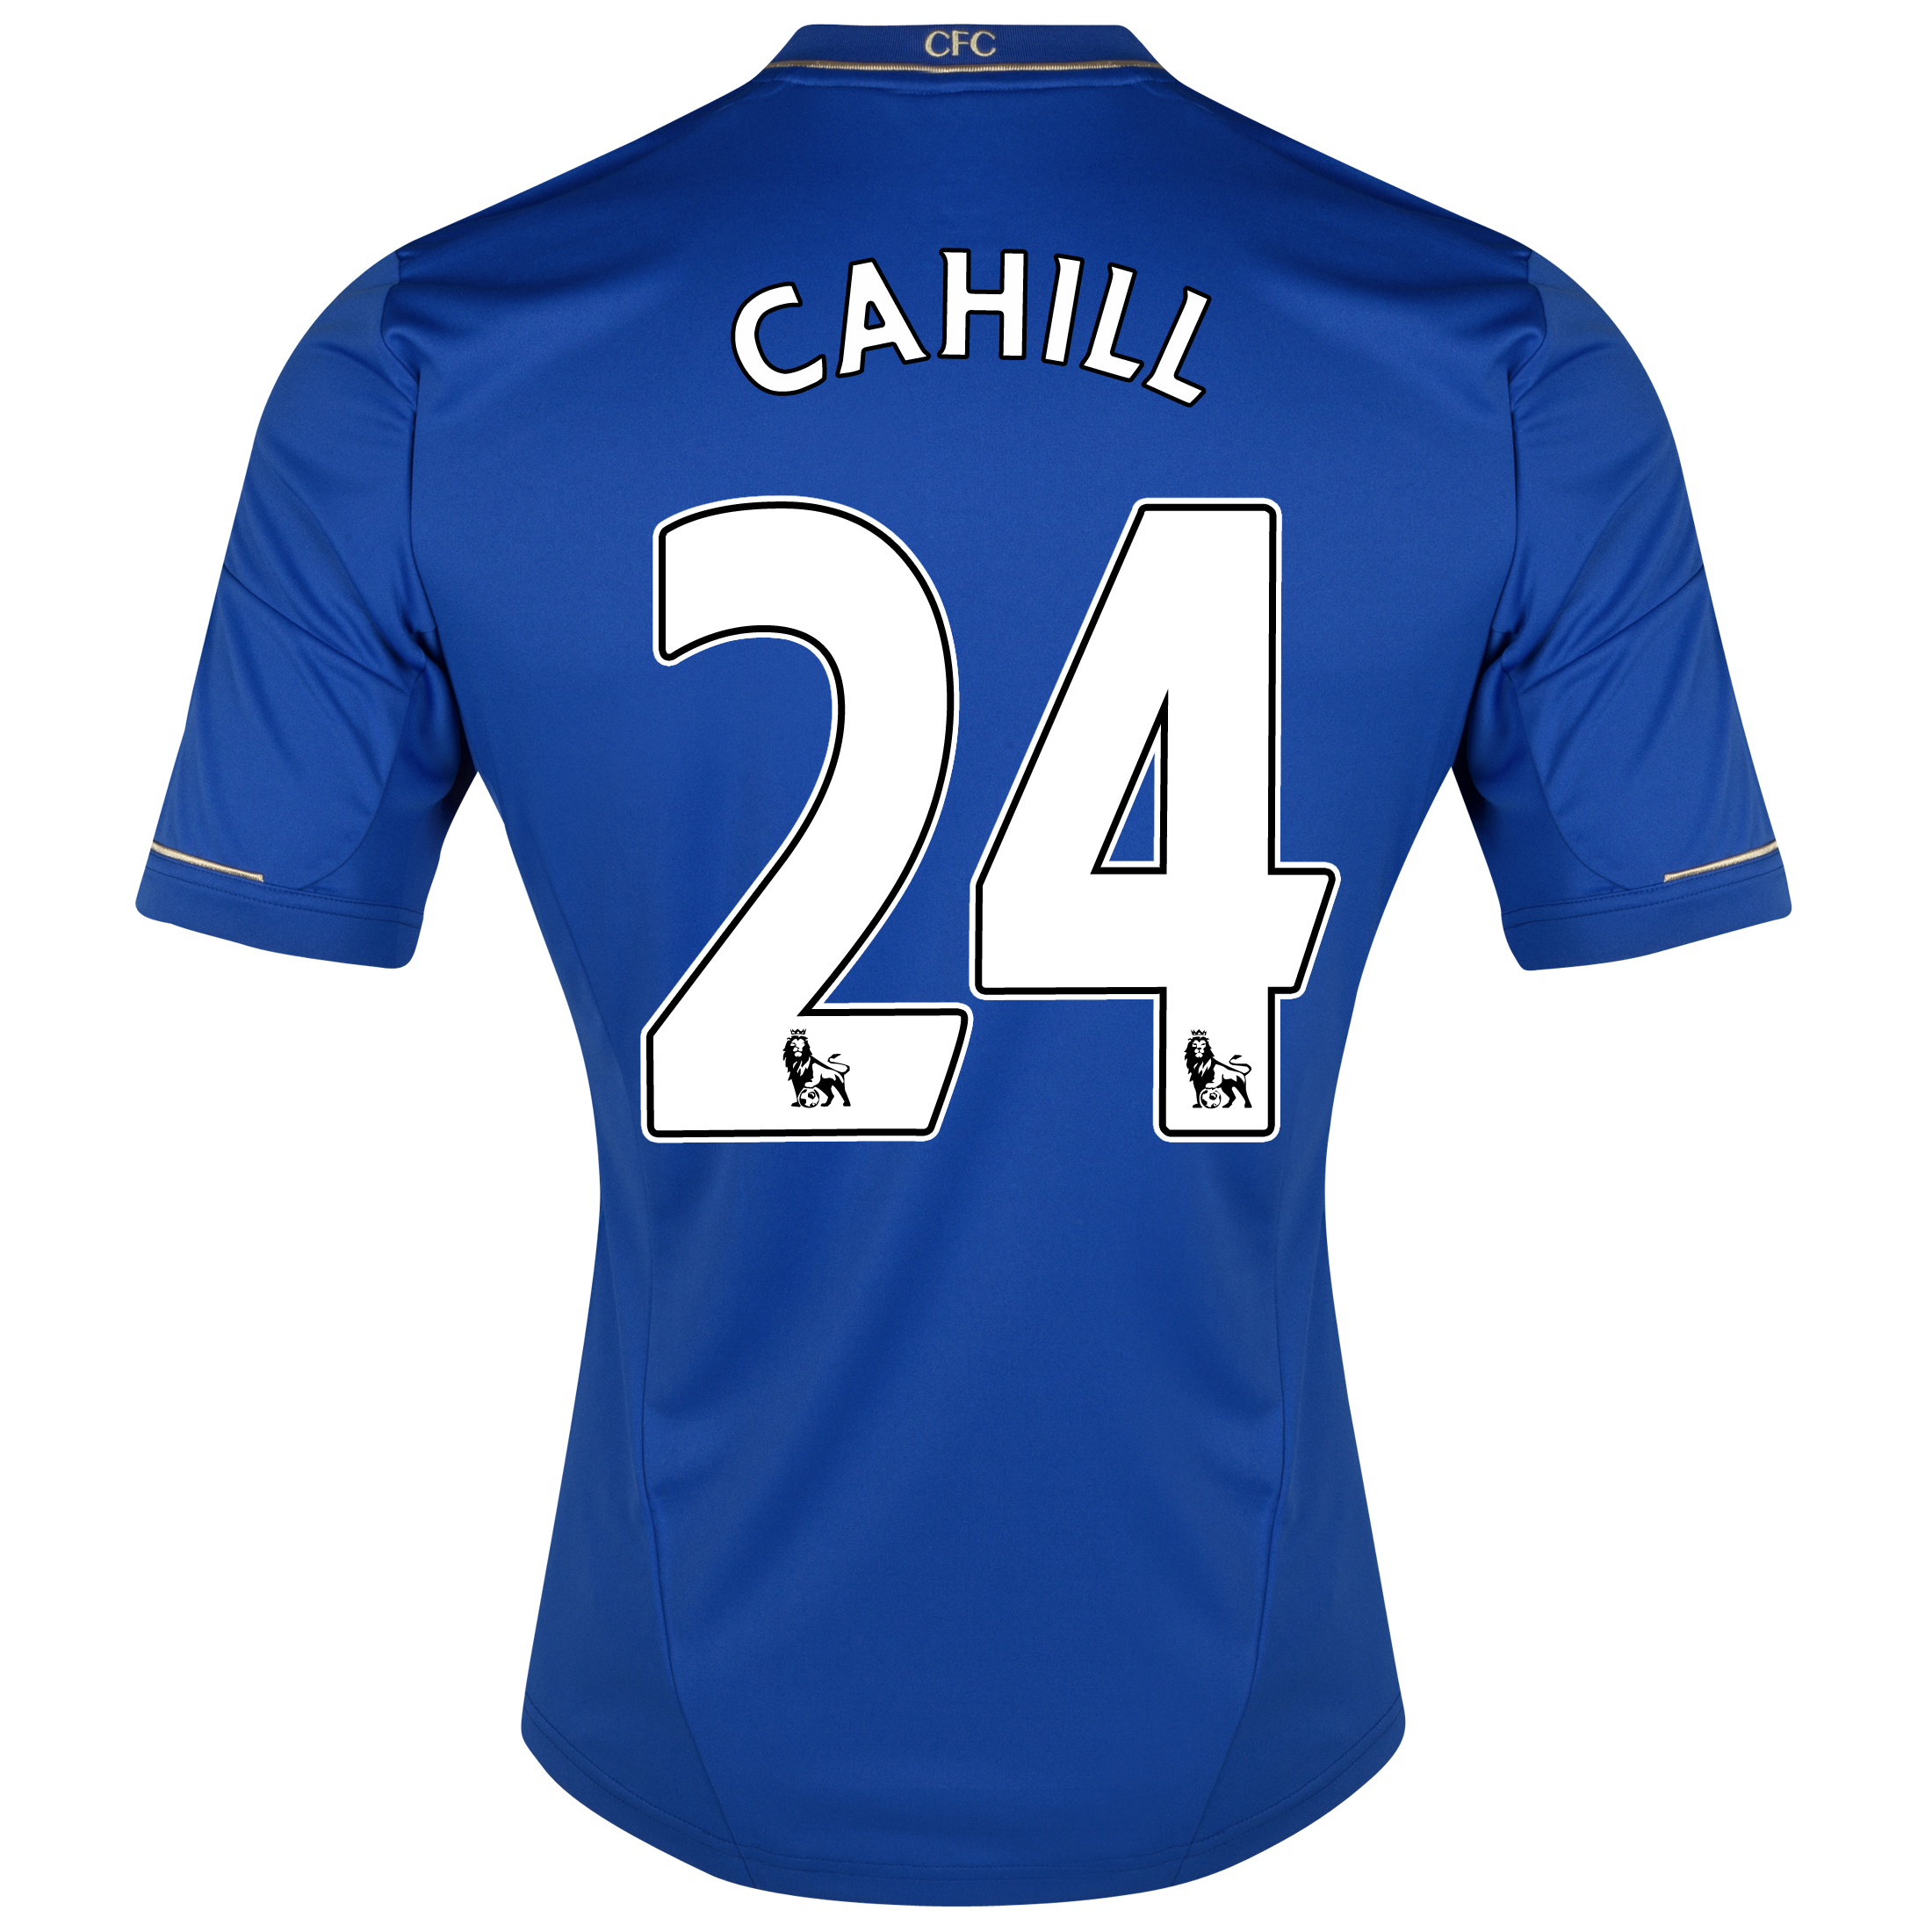 Chelsea Home Shirt 2012/13 with Cahill 24 printing